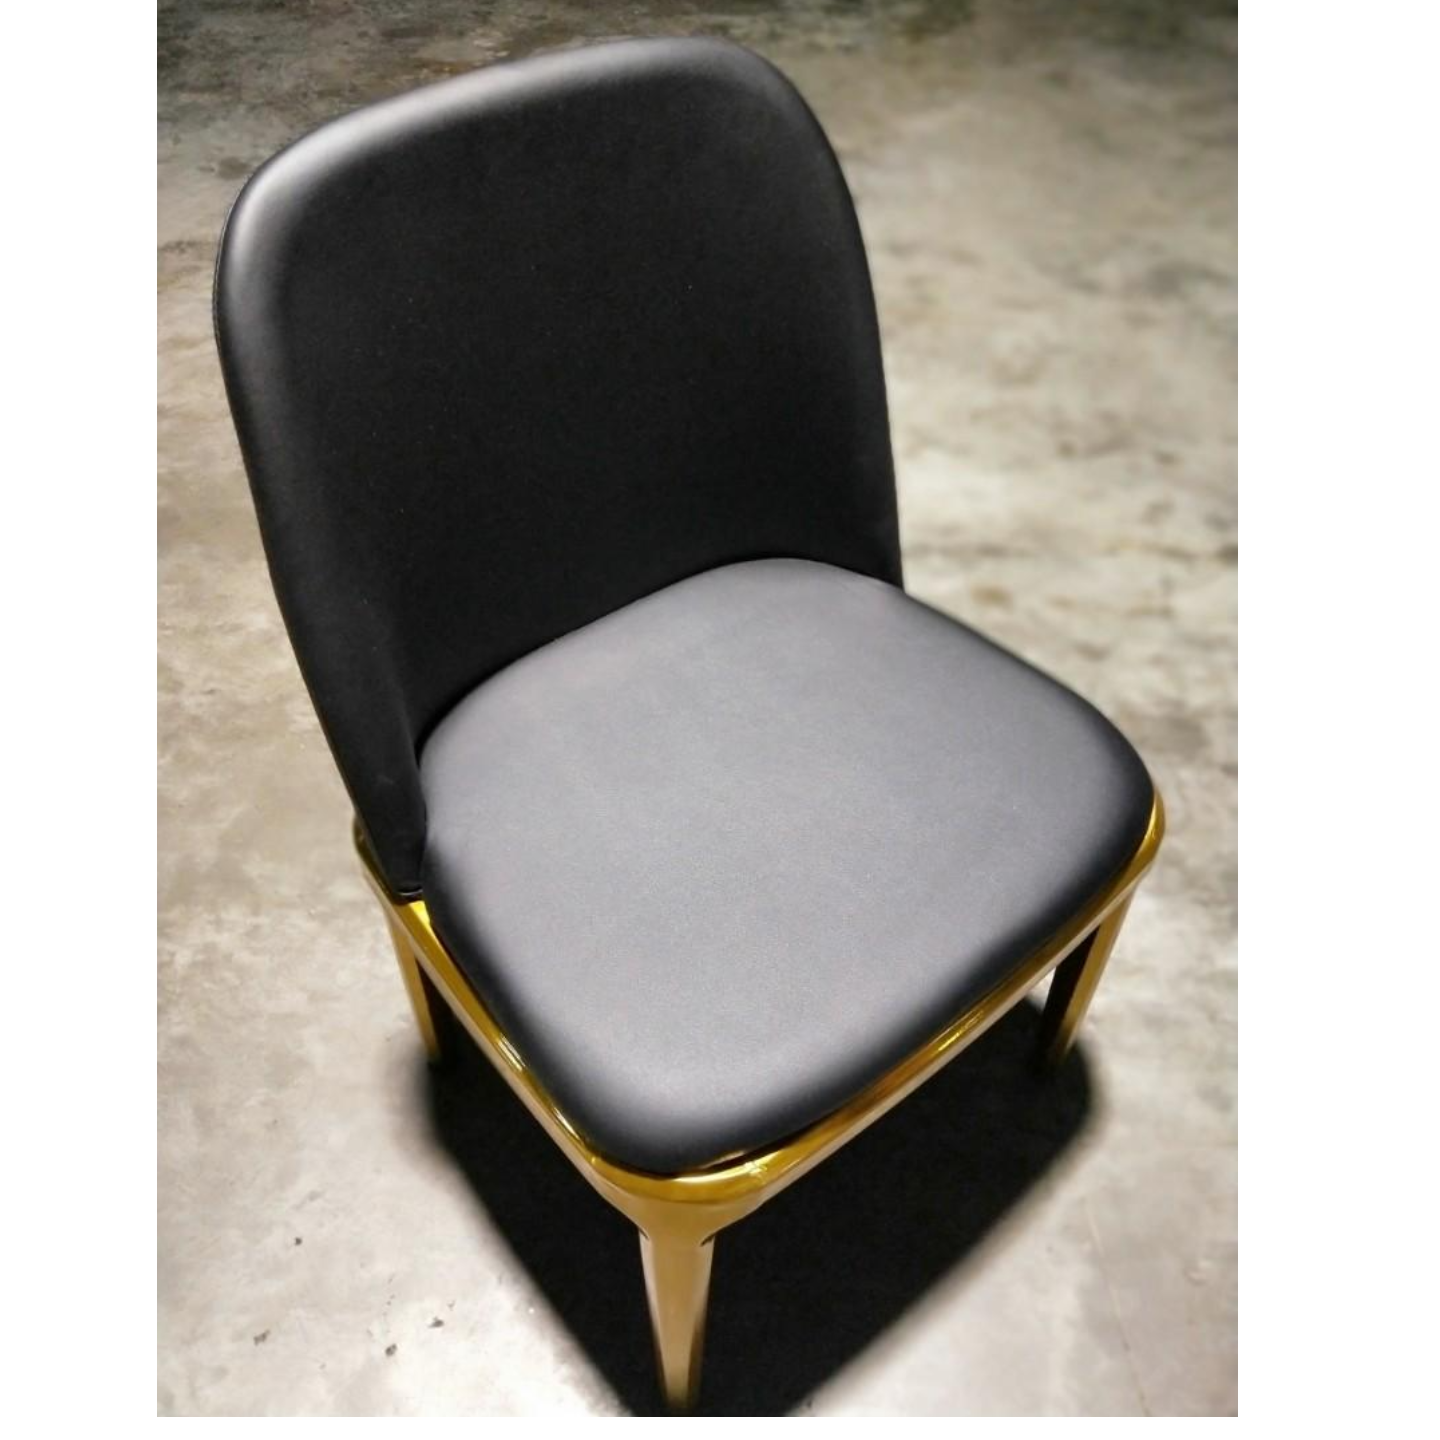 6 x CHADSTONE Black Modern PU Leather Dining Chair with GOLD FRAME